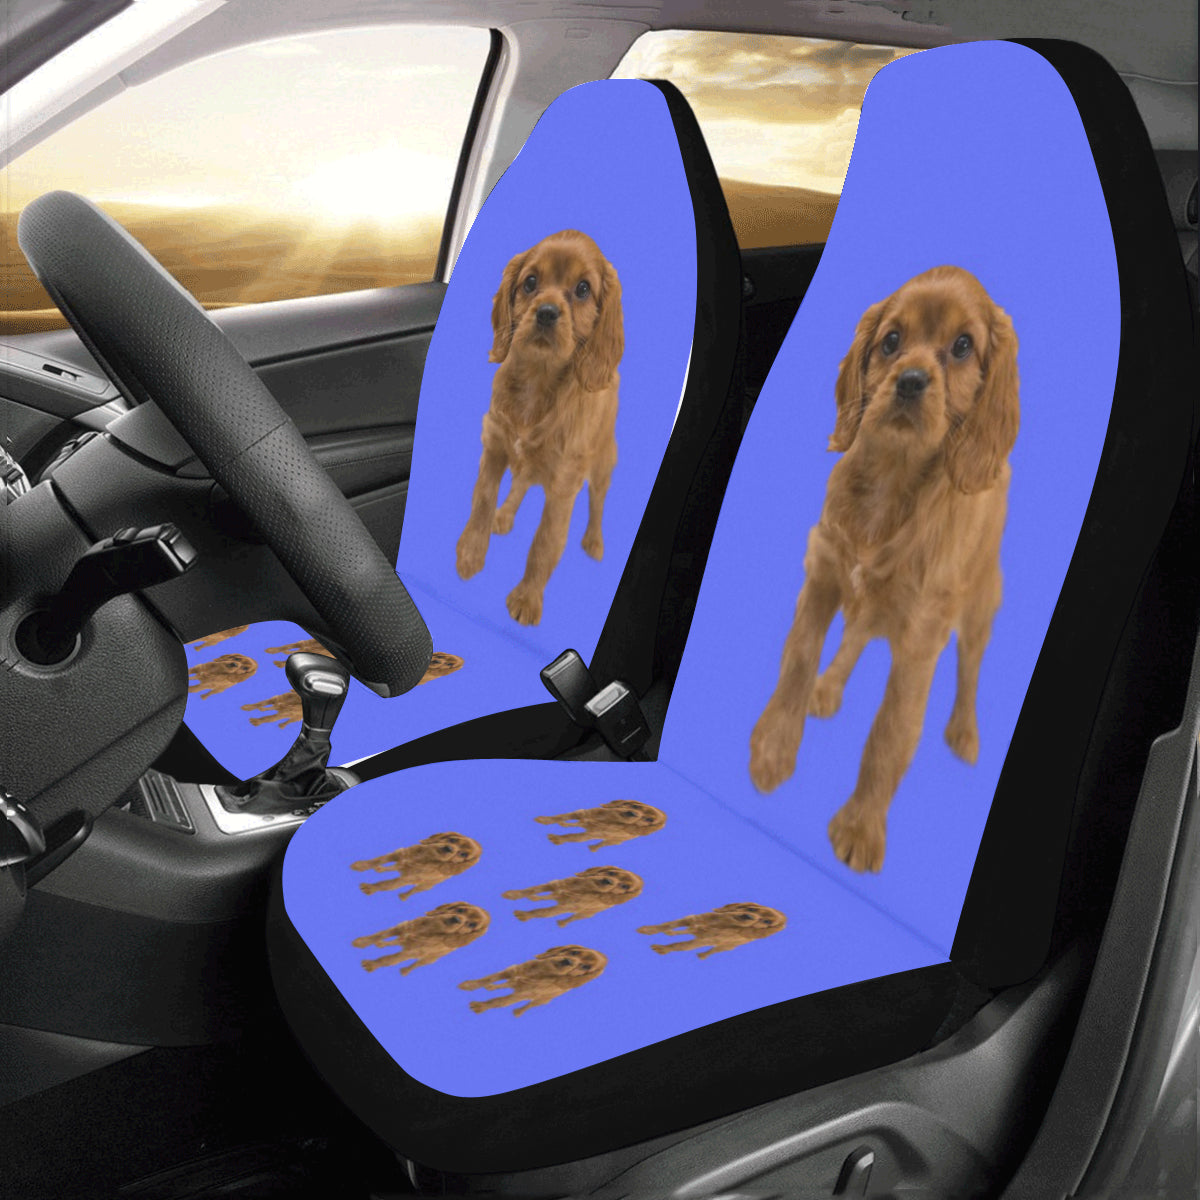 Cavalier King Charles Spaniel Car Seat Covers - Ruby (Set of 2)